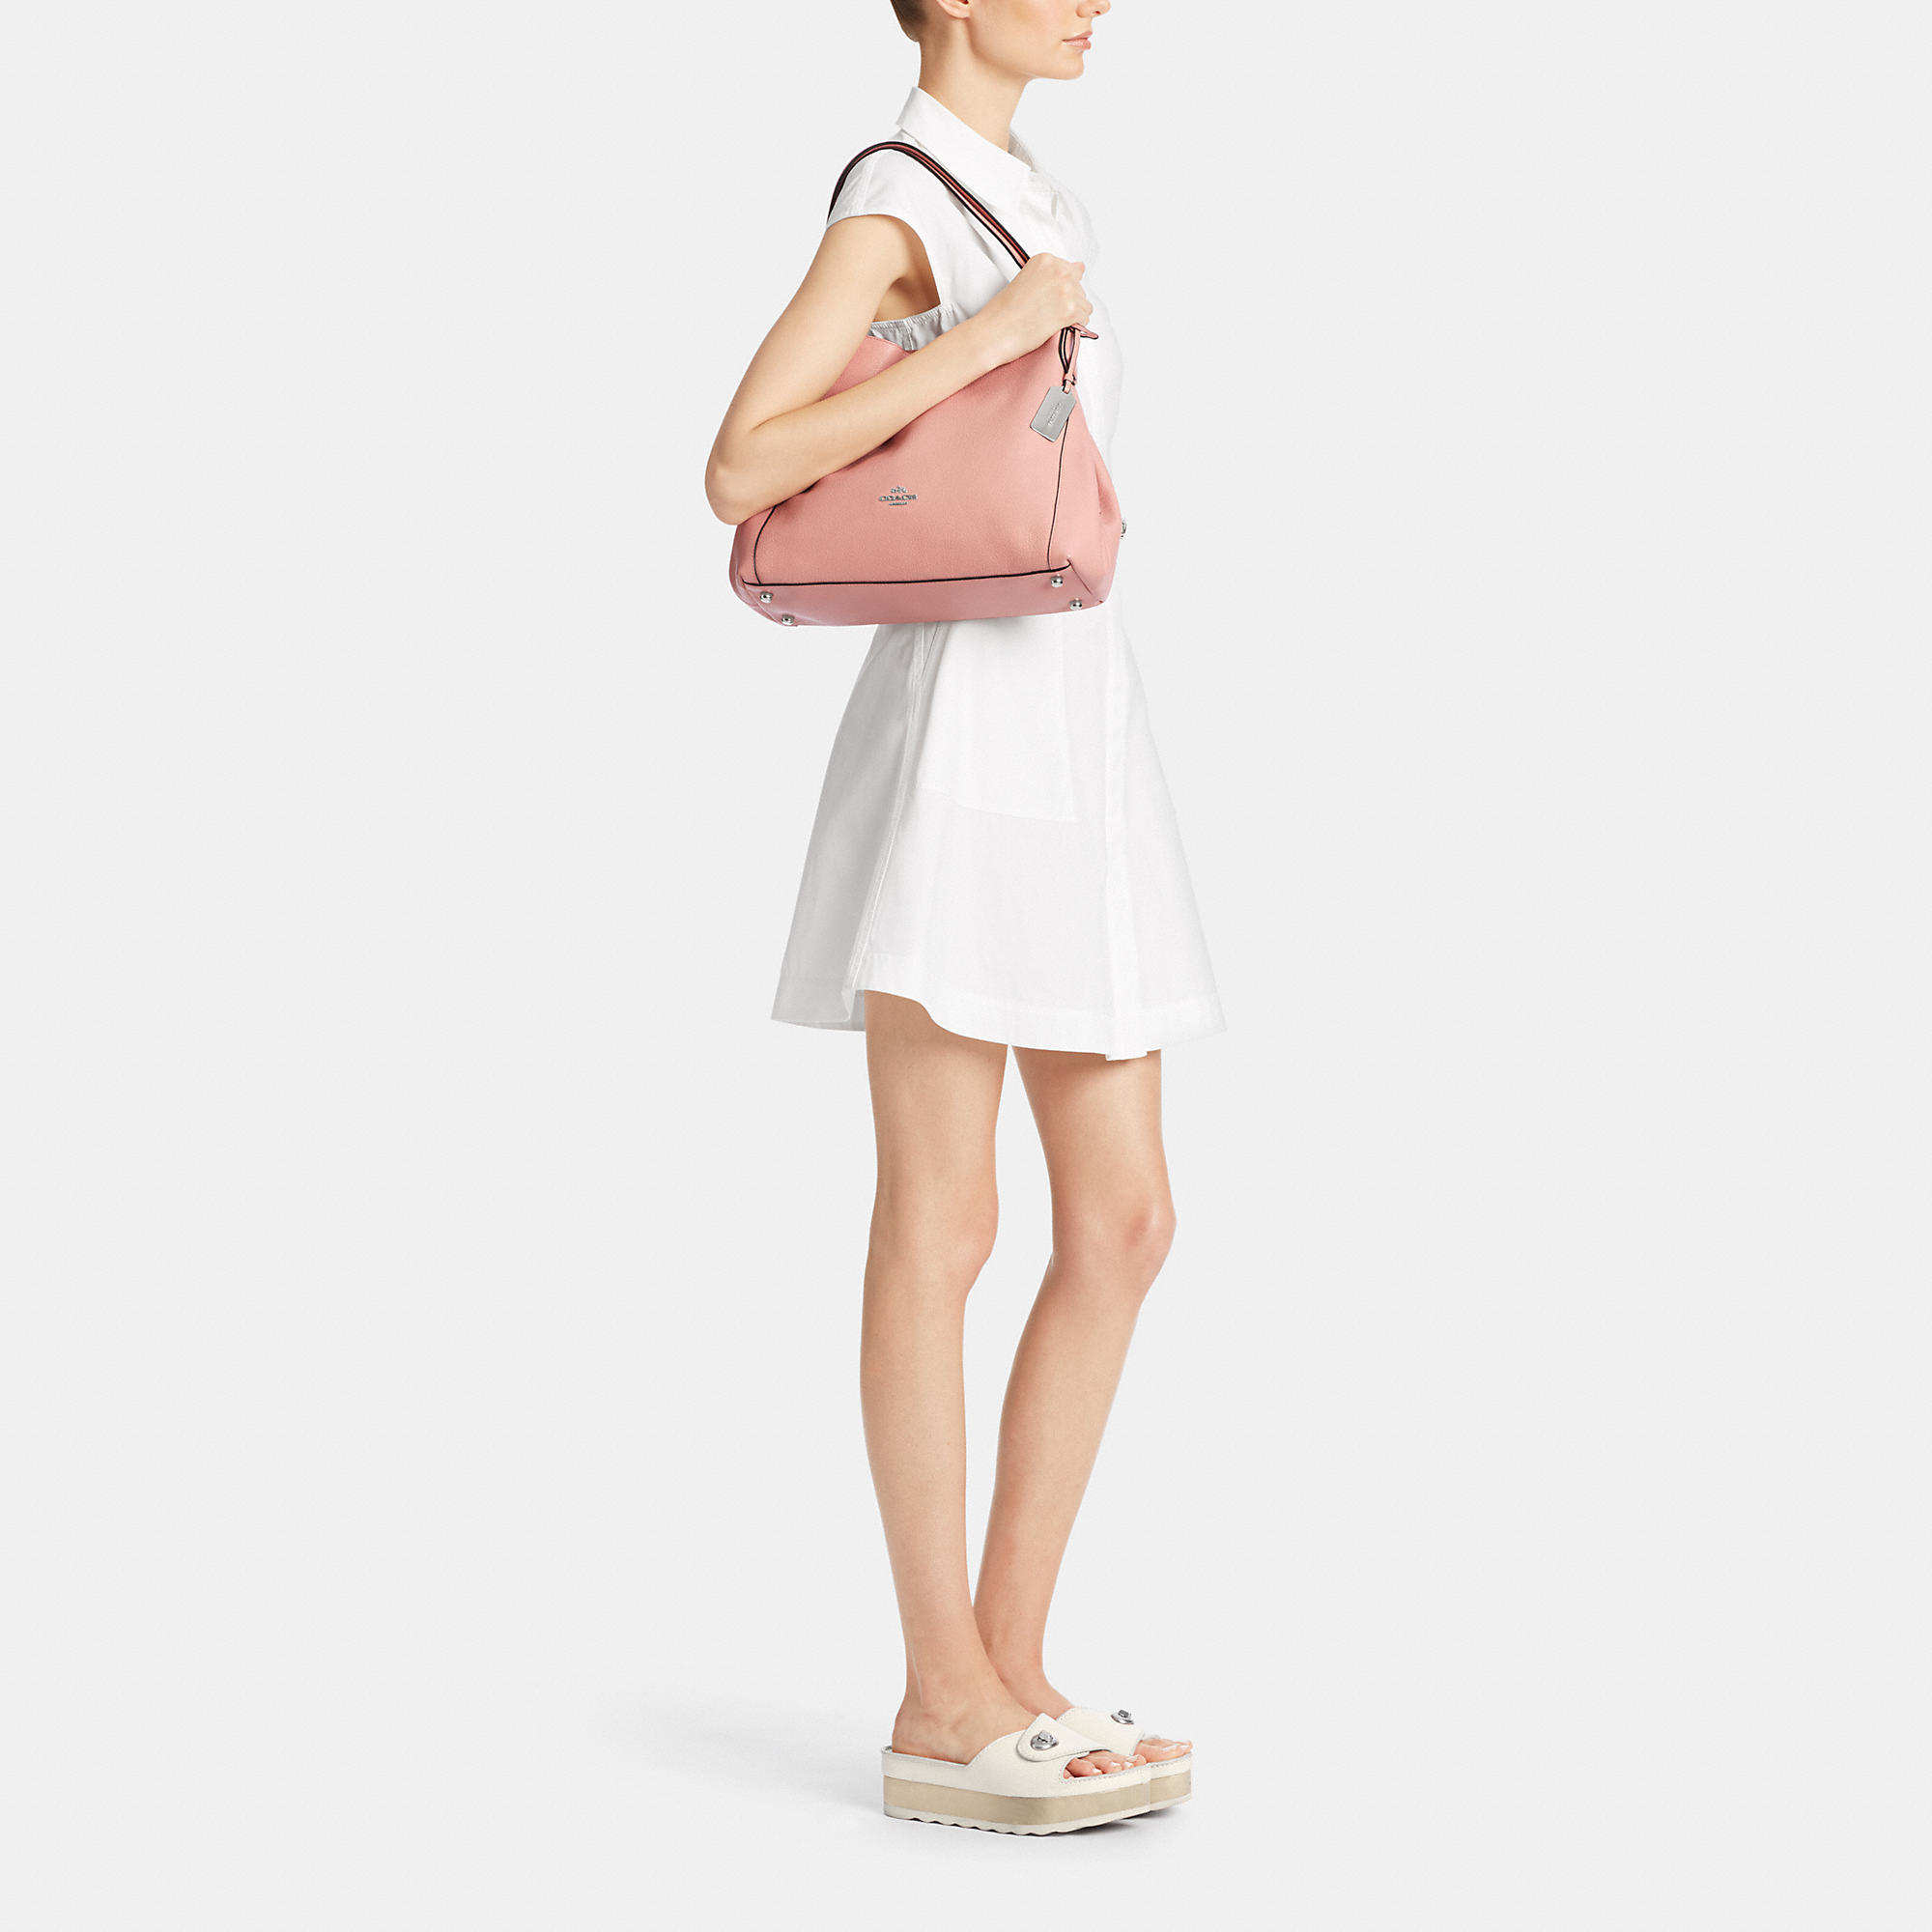 Lyst - COACH Edie Shoulder Bag 31 In Refined Pebble Leather 0d2f24bae3